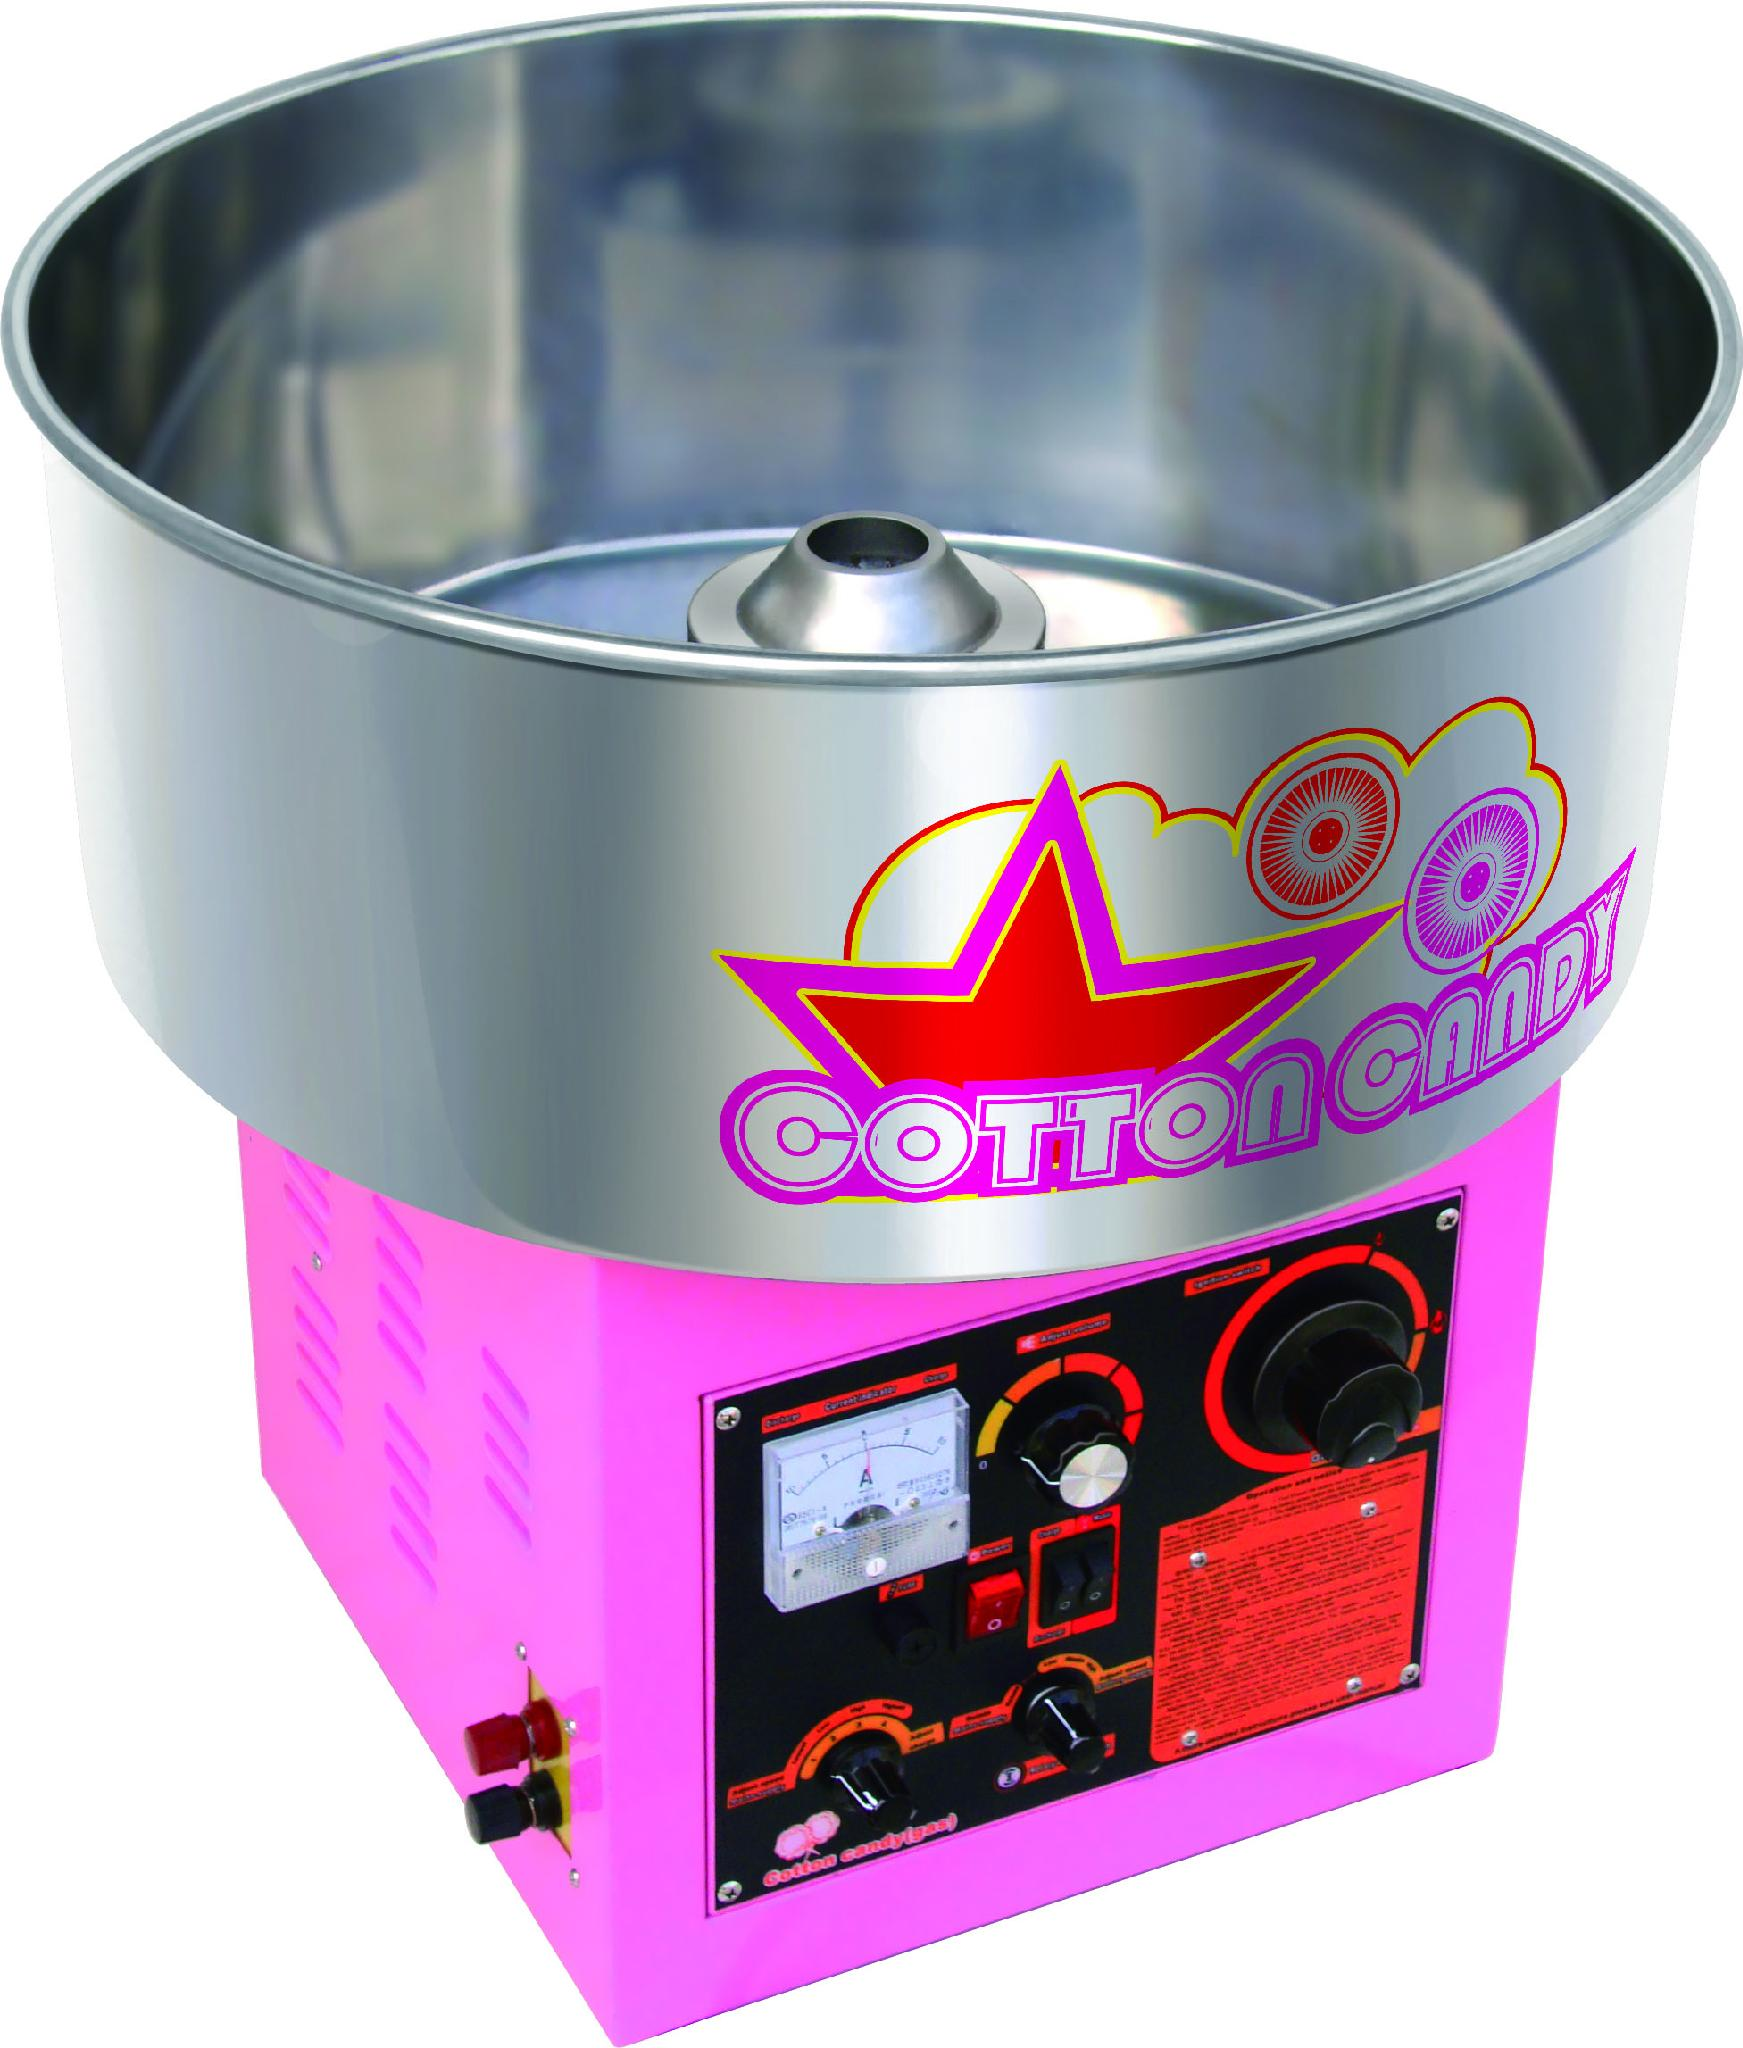 Wholesale WY-78 Gas Cotton Candy Machine, Cotton Candy Machine Price